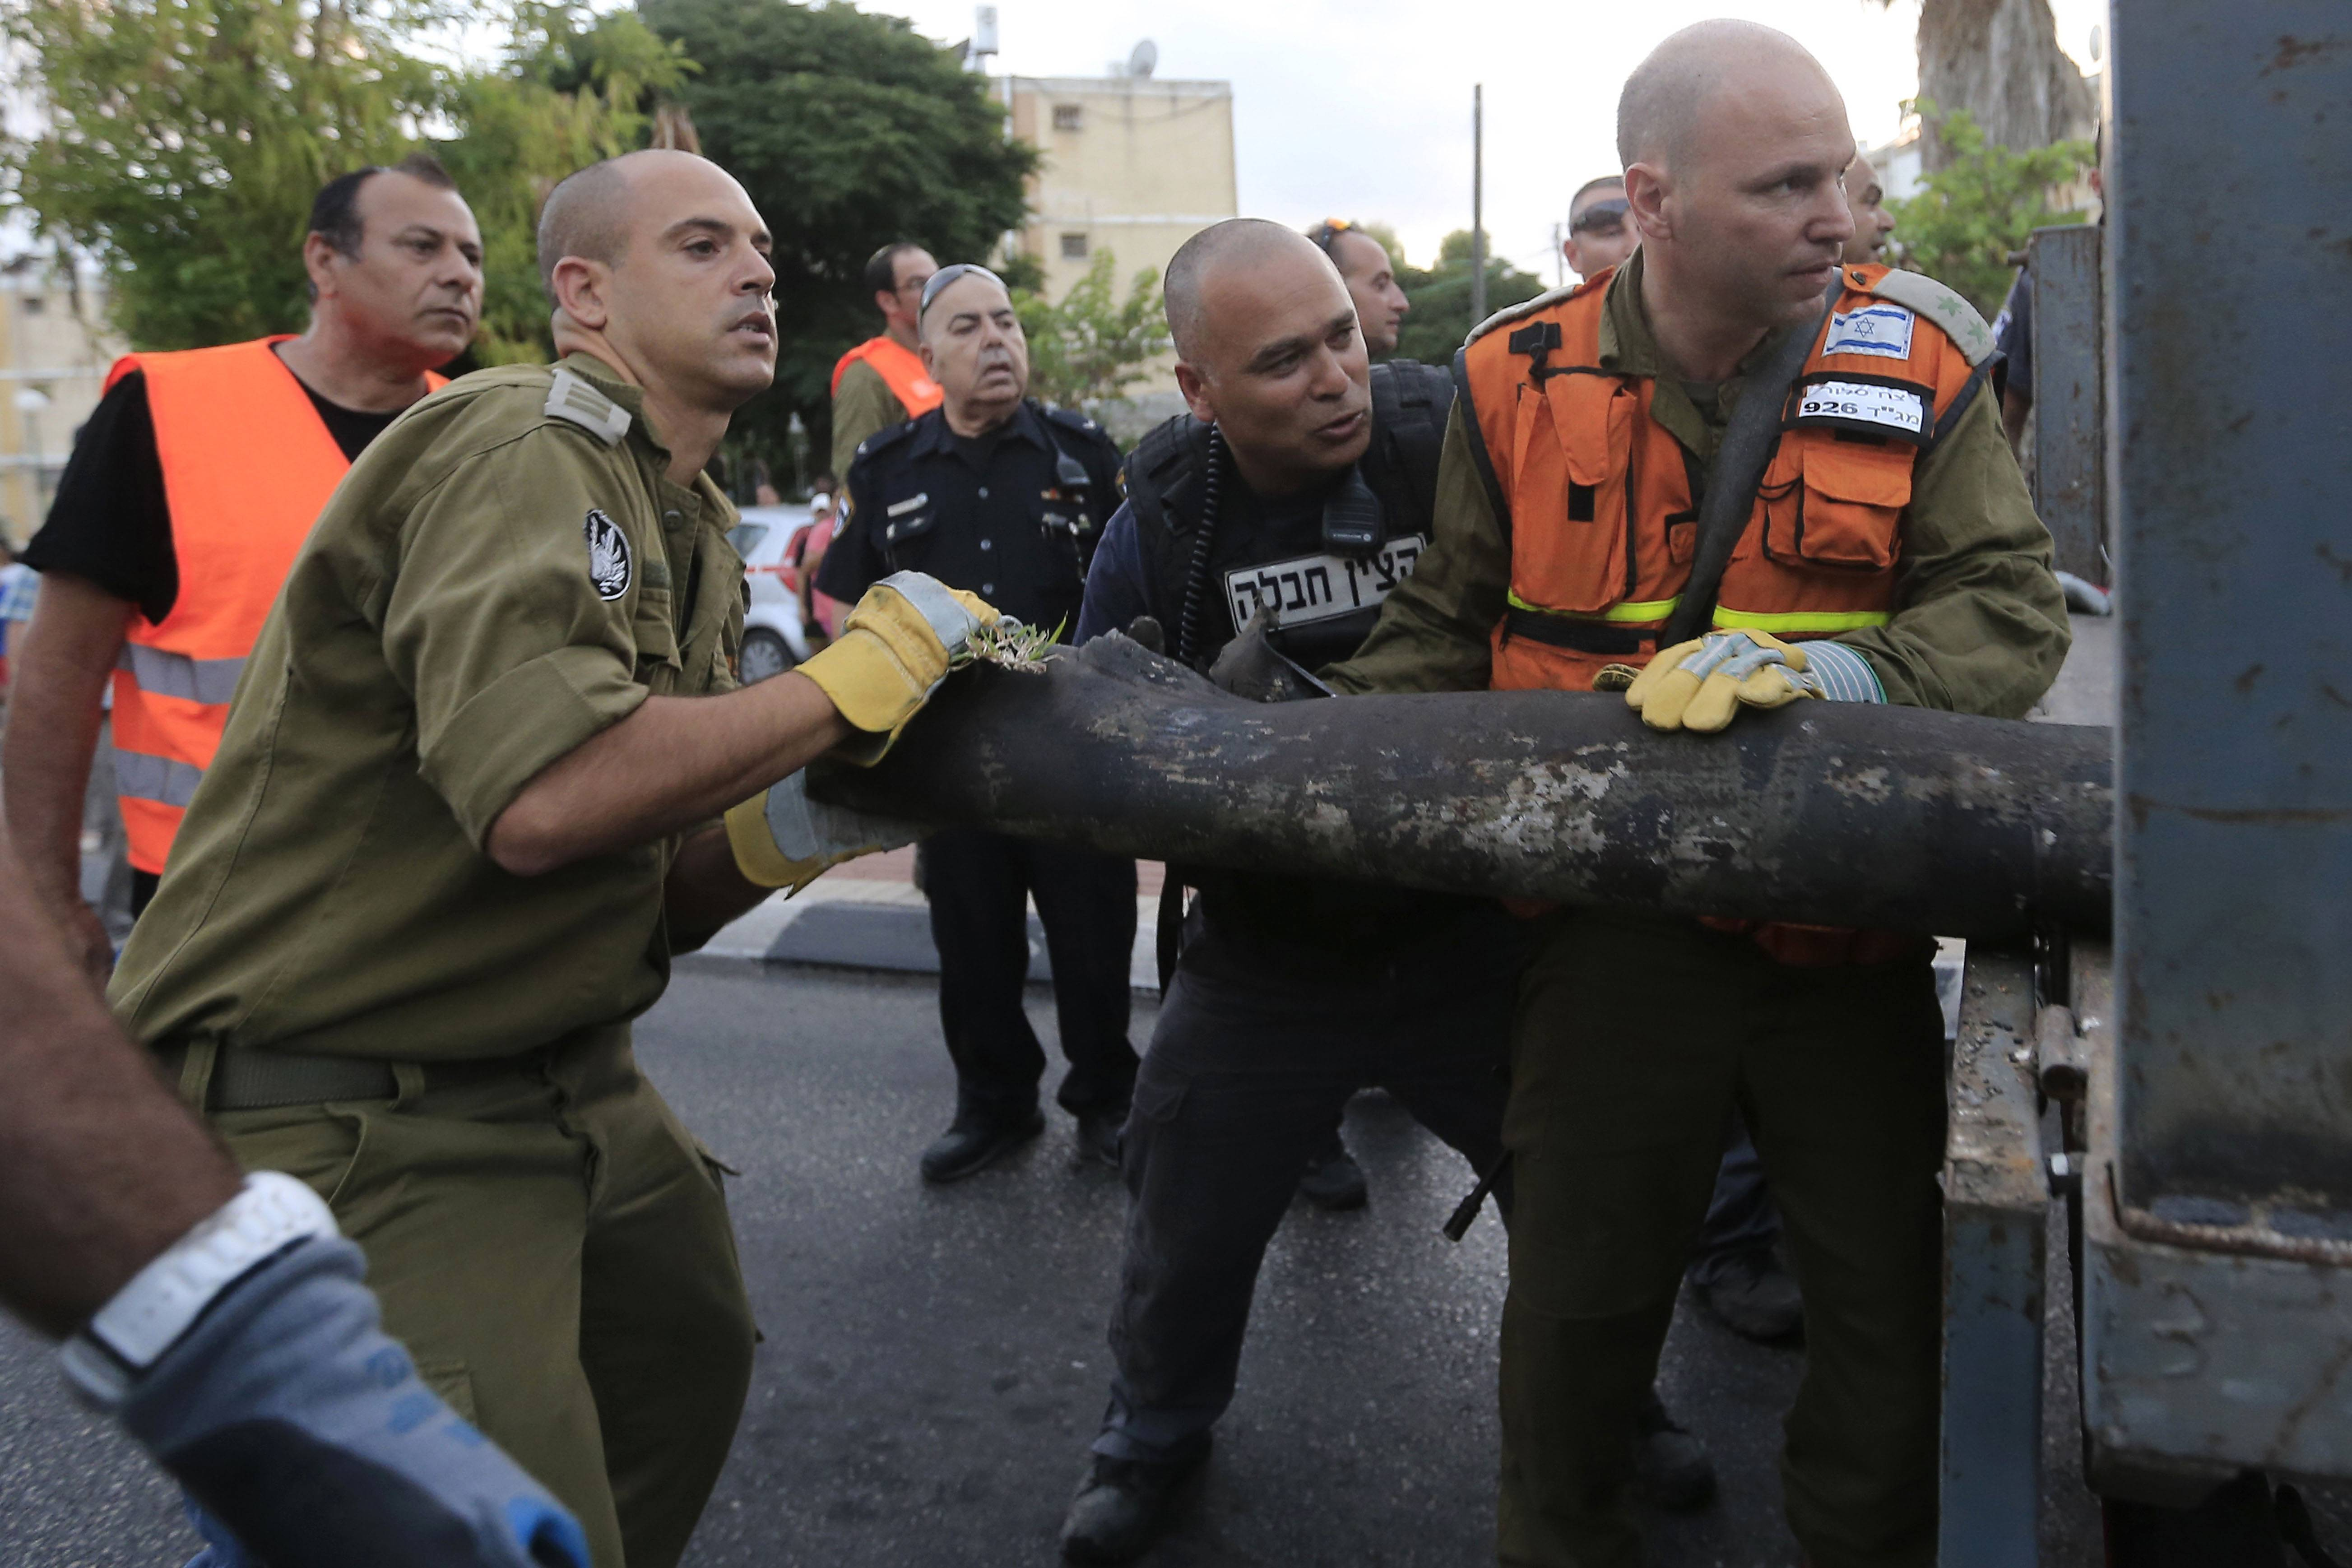 Israeli policemen and army officers carry the remains of a rocket fired from Gaza at the southern Israeli city of Ashkelon Tuesday. An Egyptian truce proposal for the conflict in Gaza unraveled Tuesday after the Islamic militant Hamas rejected the plan. Gaza militants launched scores of rockets at Israel, which after halting fire for hours finally responded with what Hamas security said were more than two dozen air strikes.